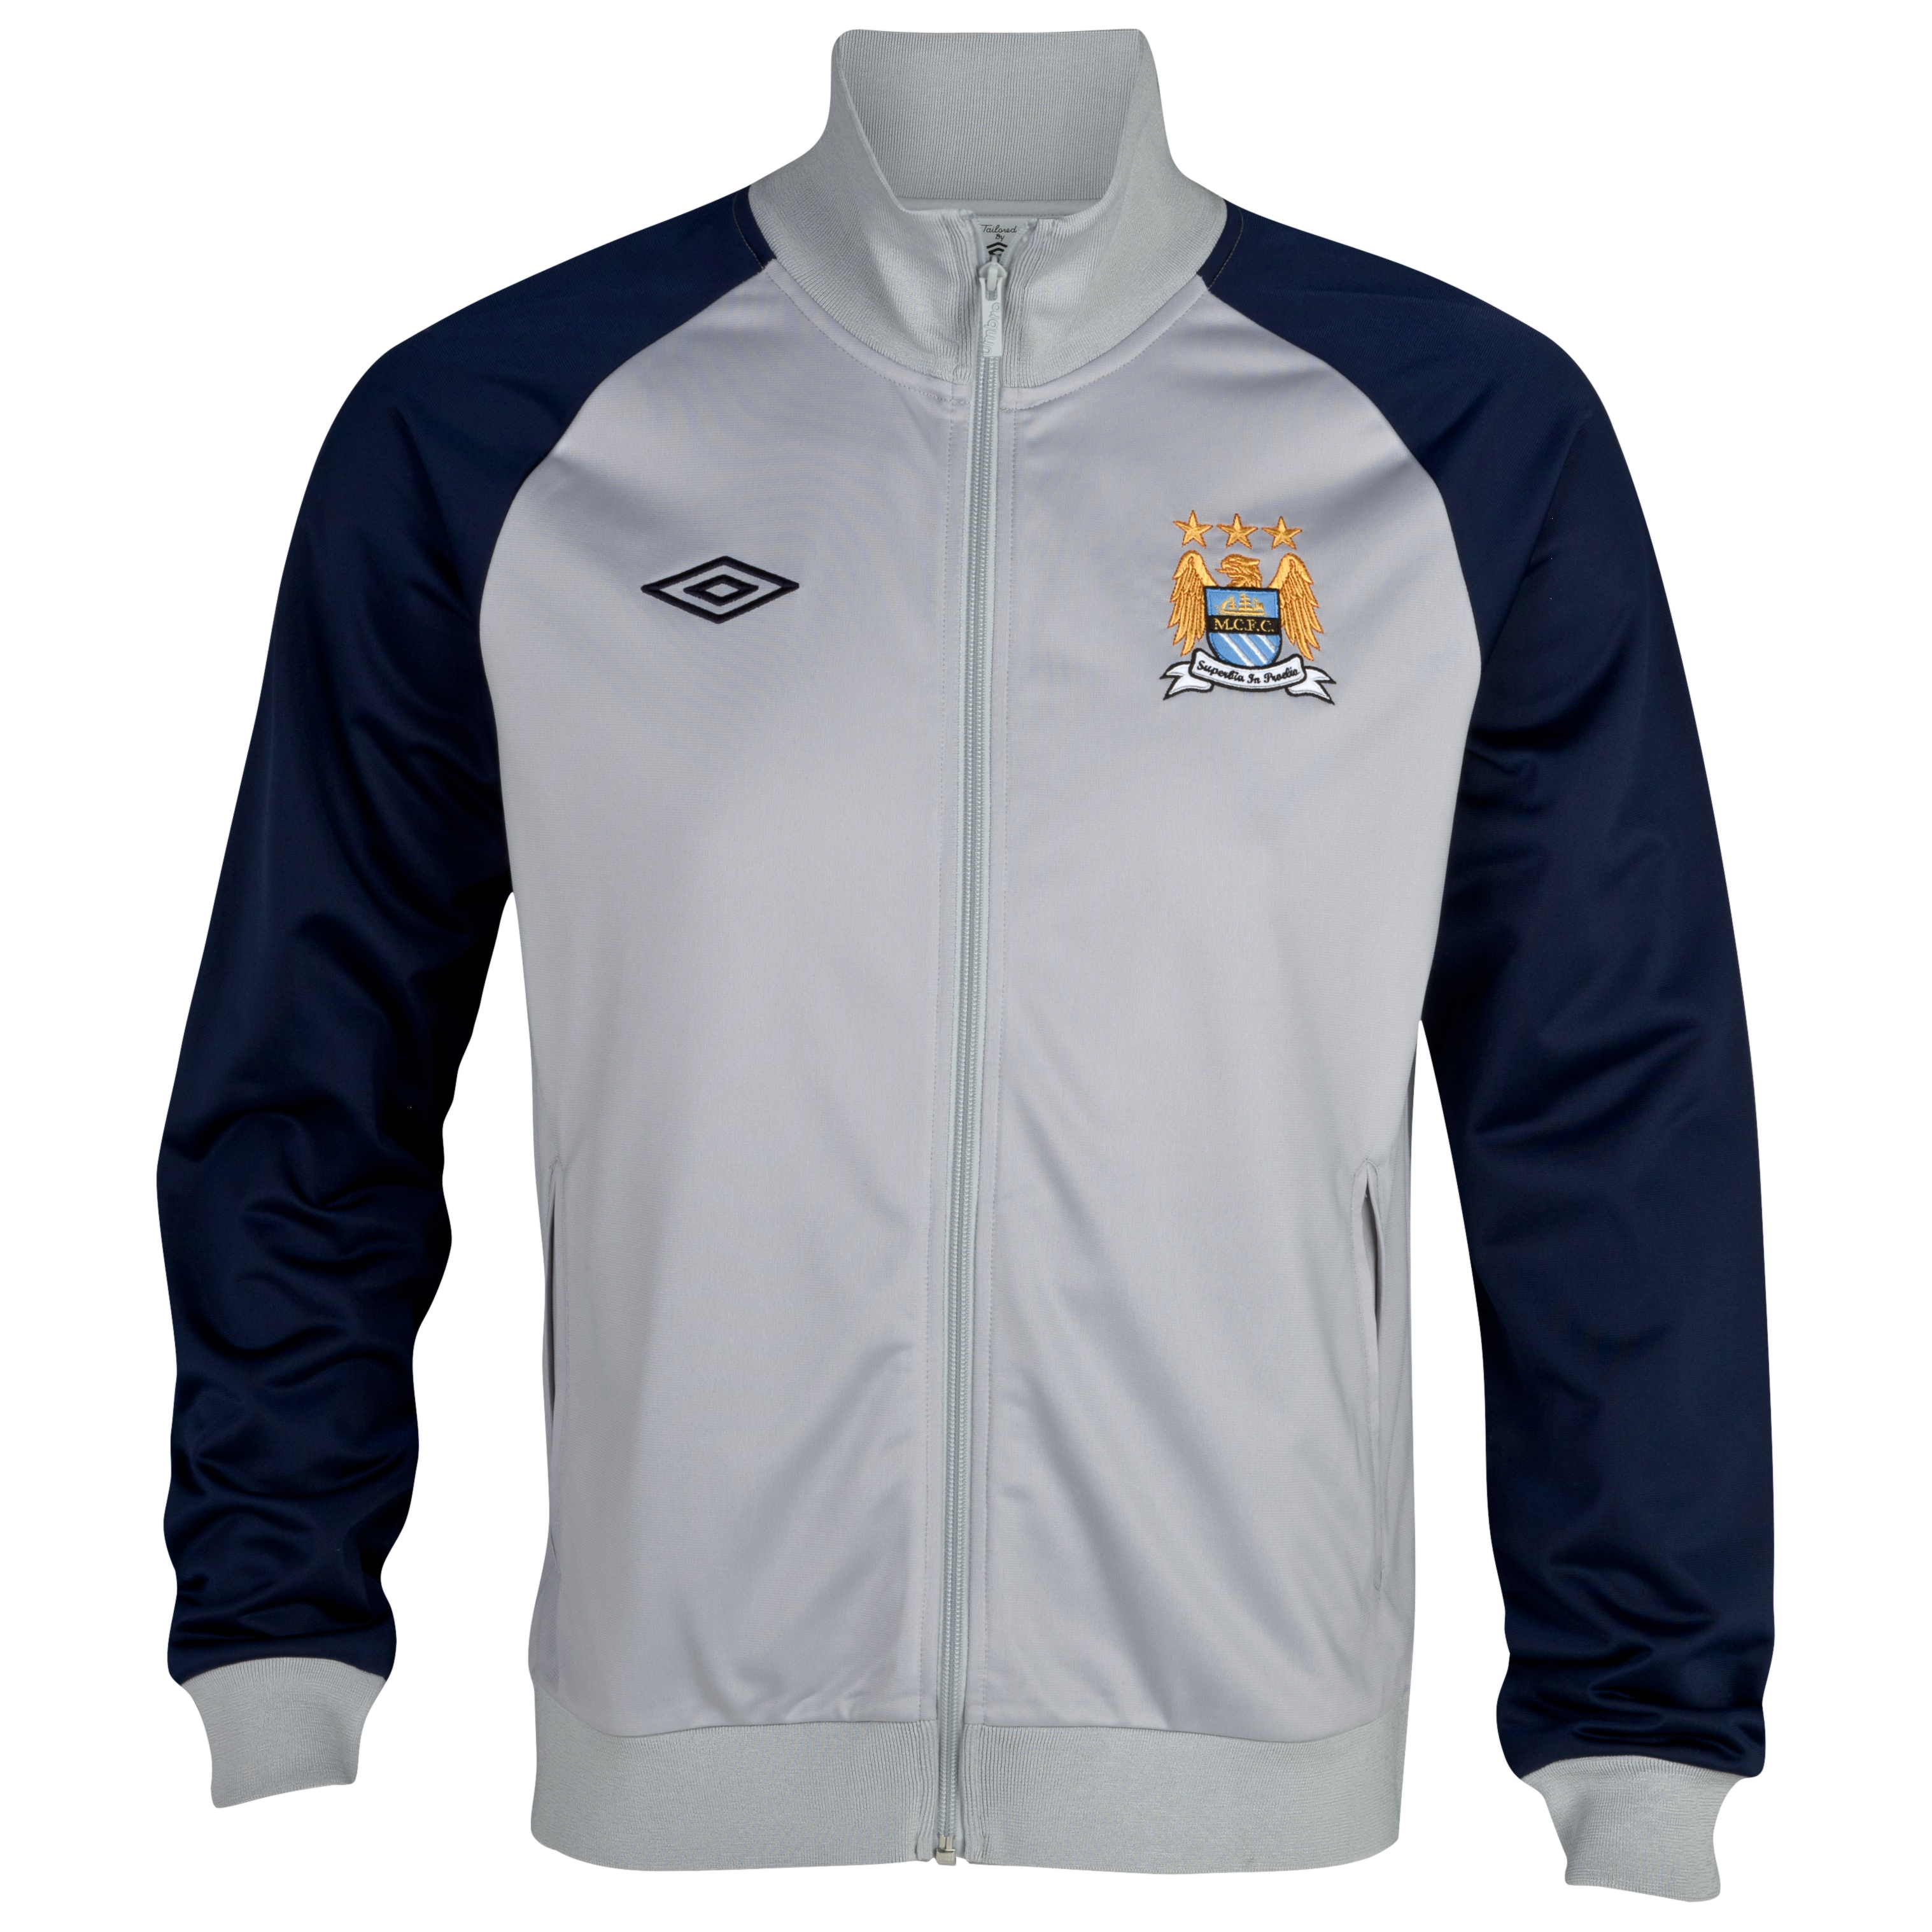 Manchester City WTC Track Jacket - Titanium / Dark Navy